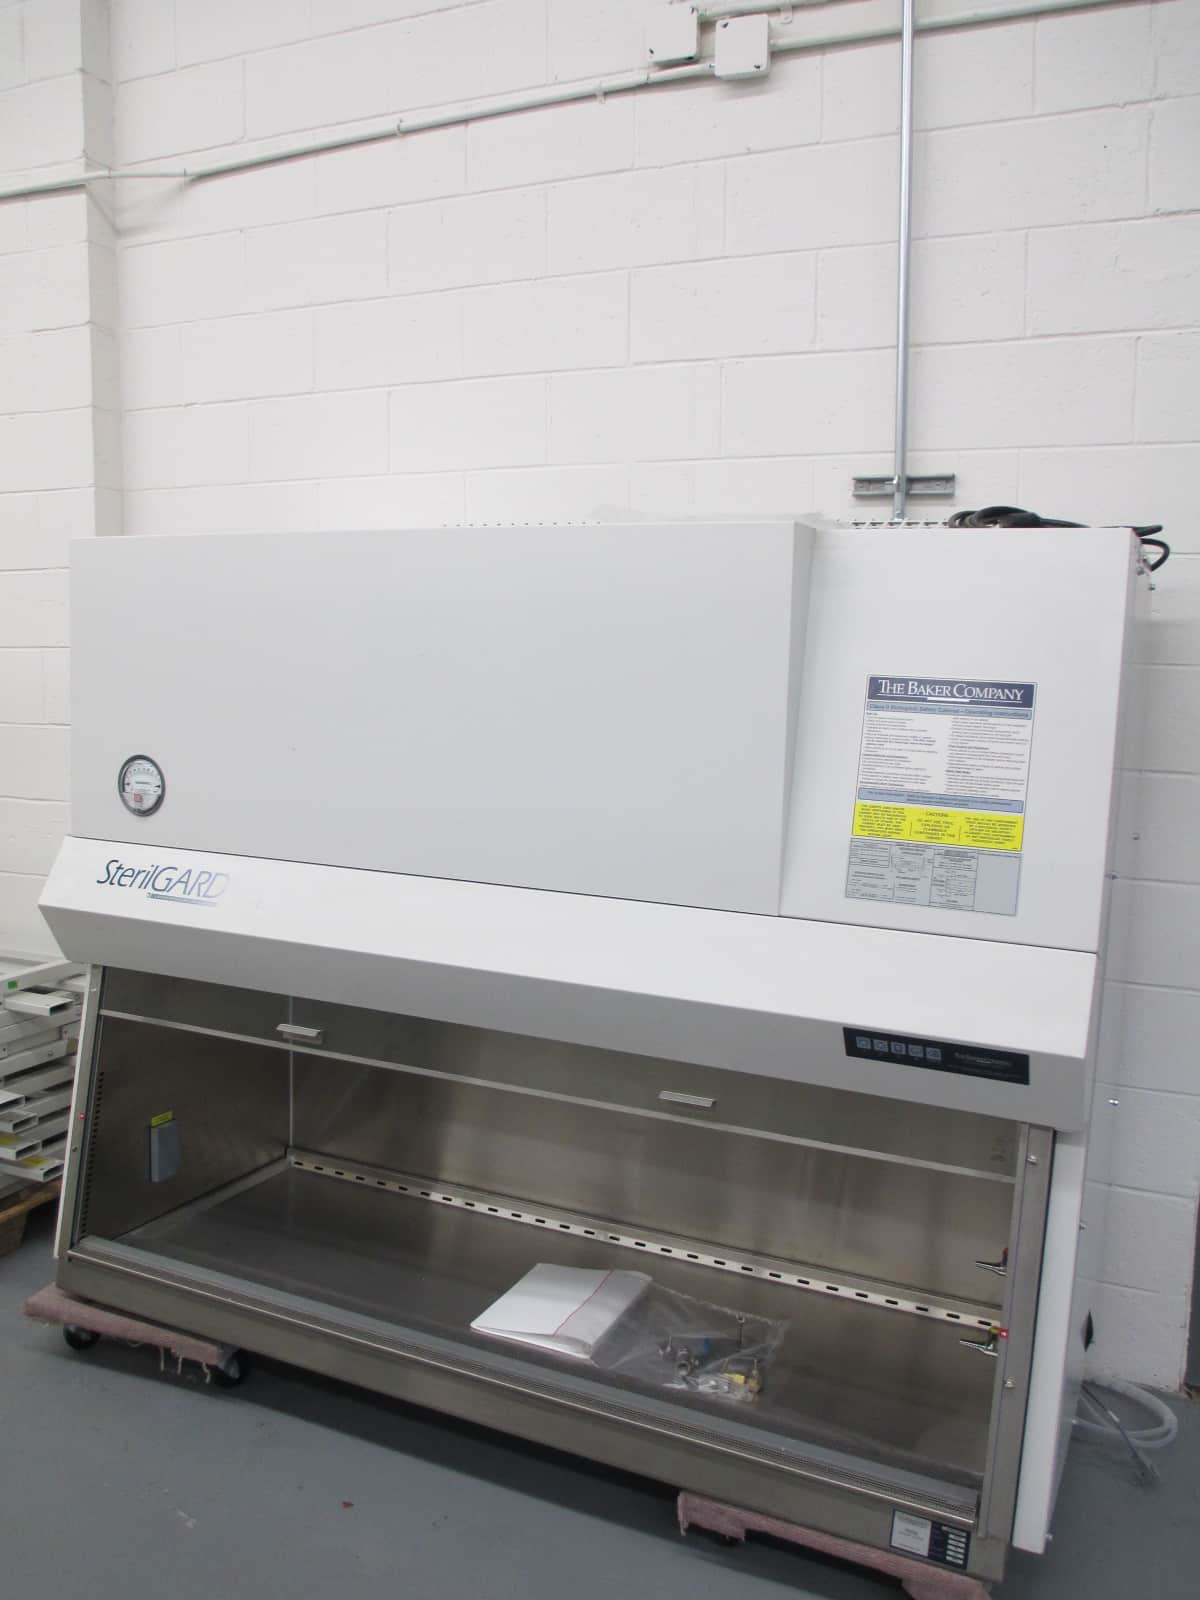 Sterilgard Advance SG-603A-HE A2 Biological Safety Cabinet